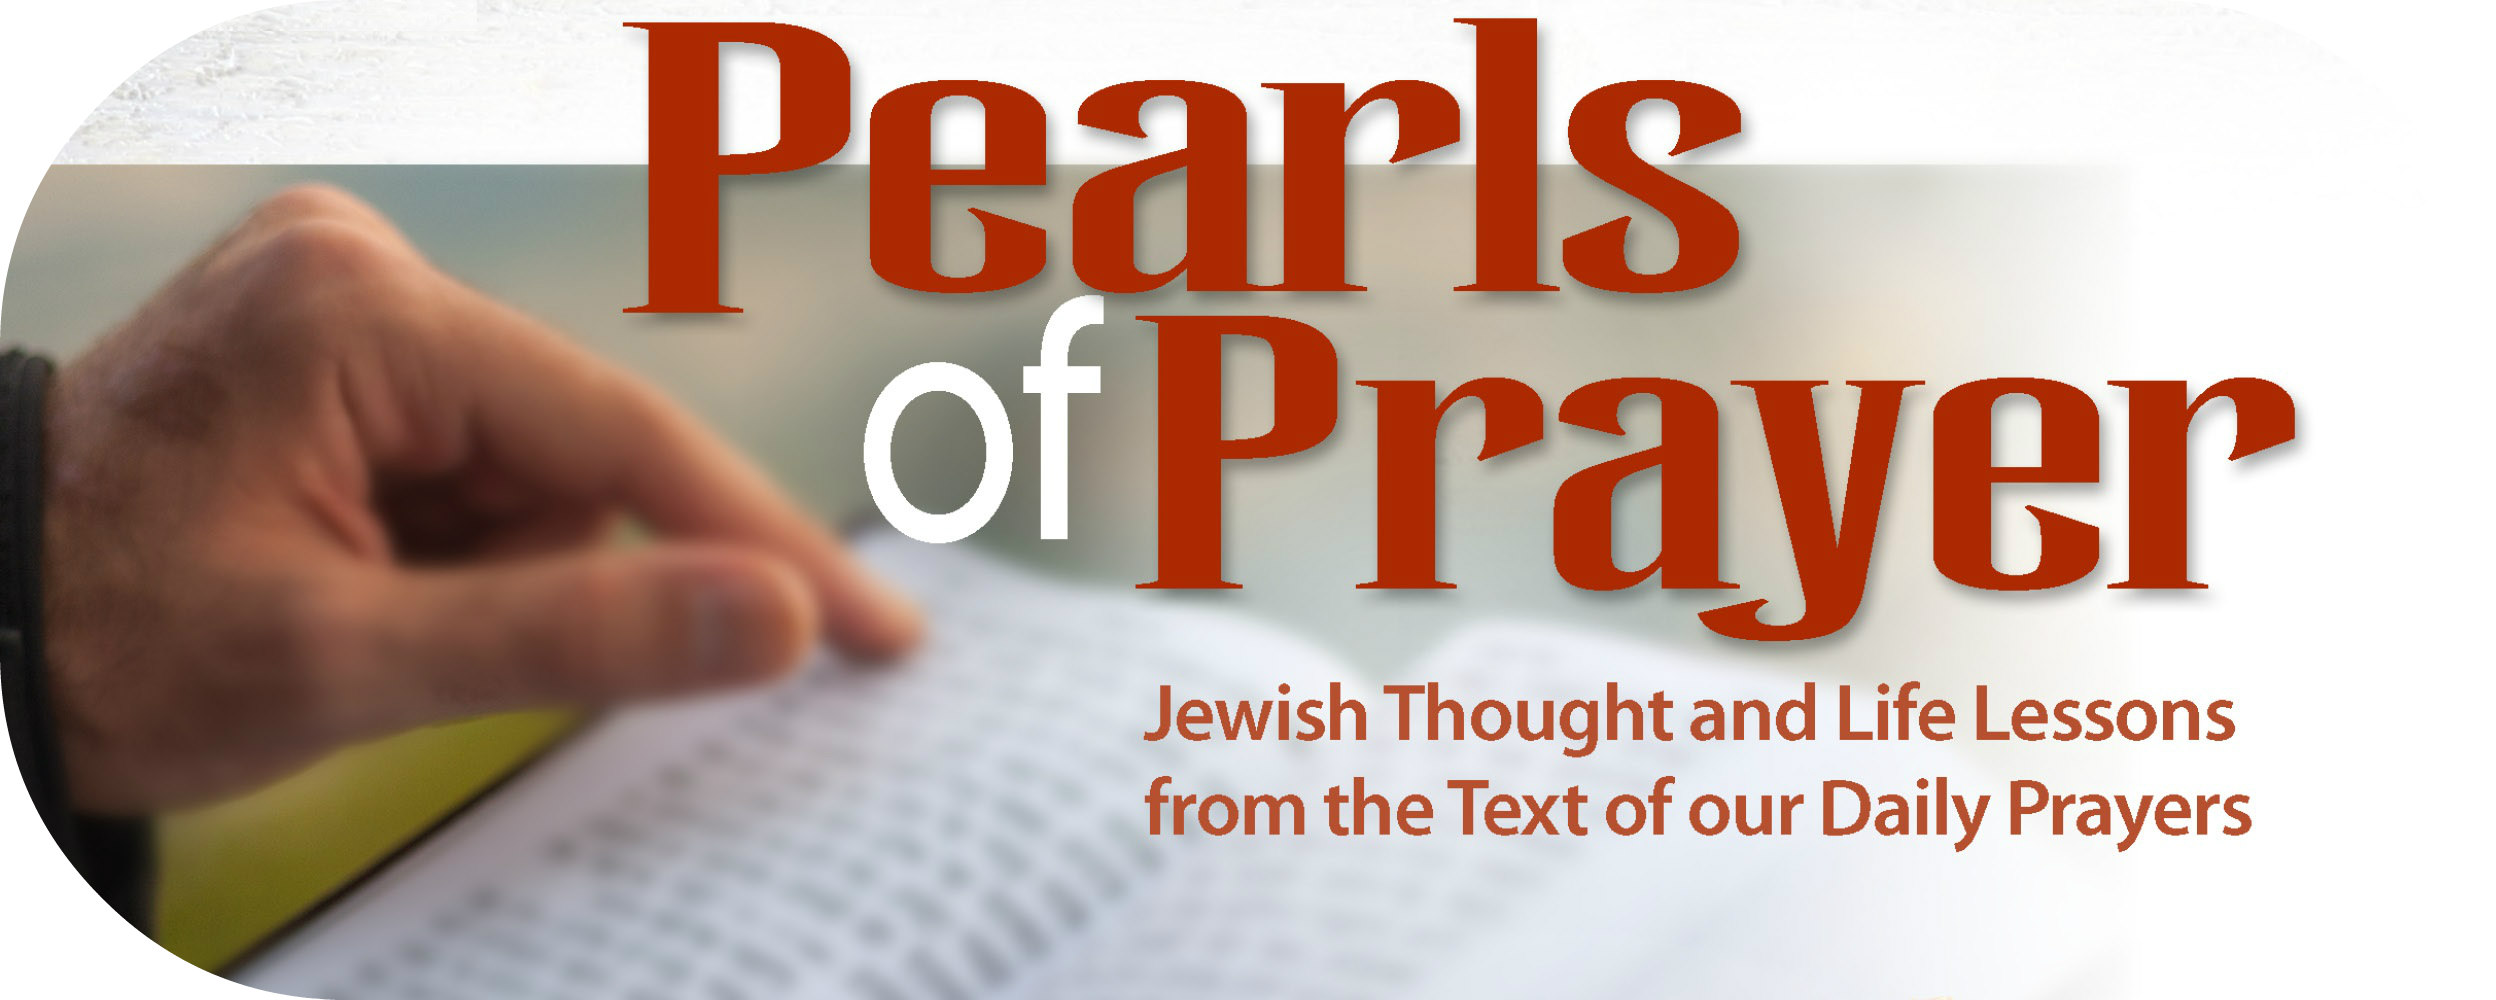 Pearls of Prayer